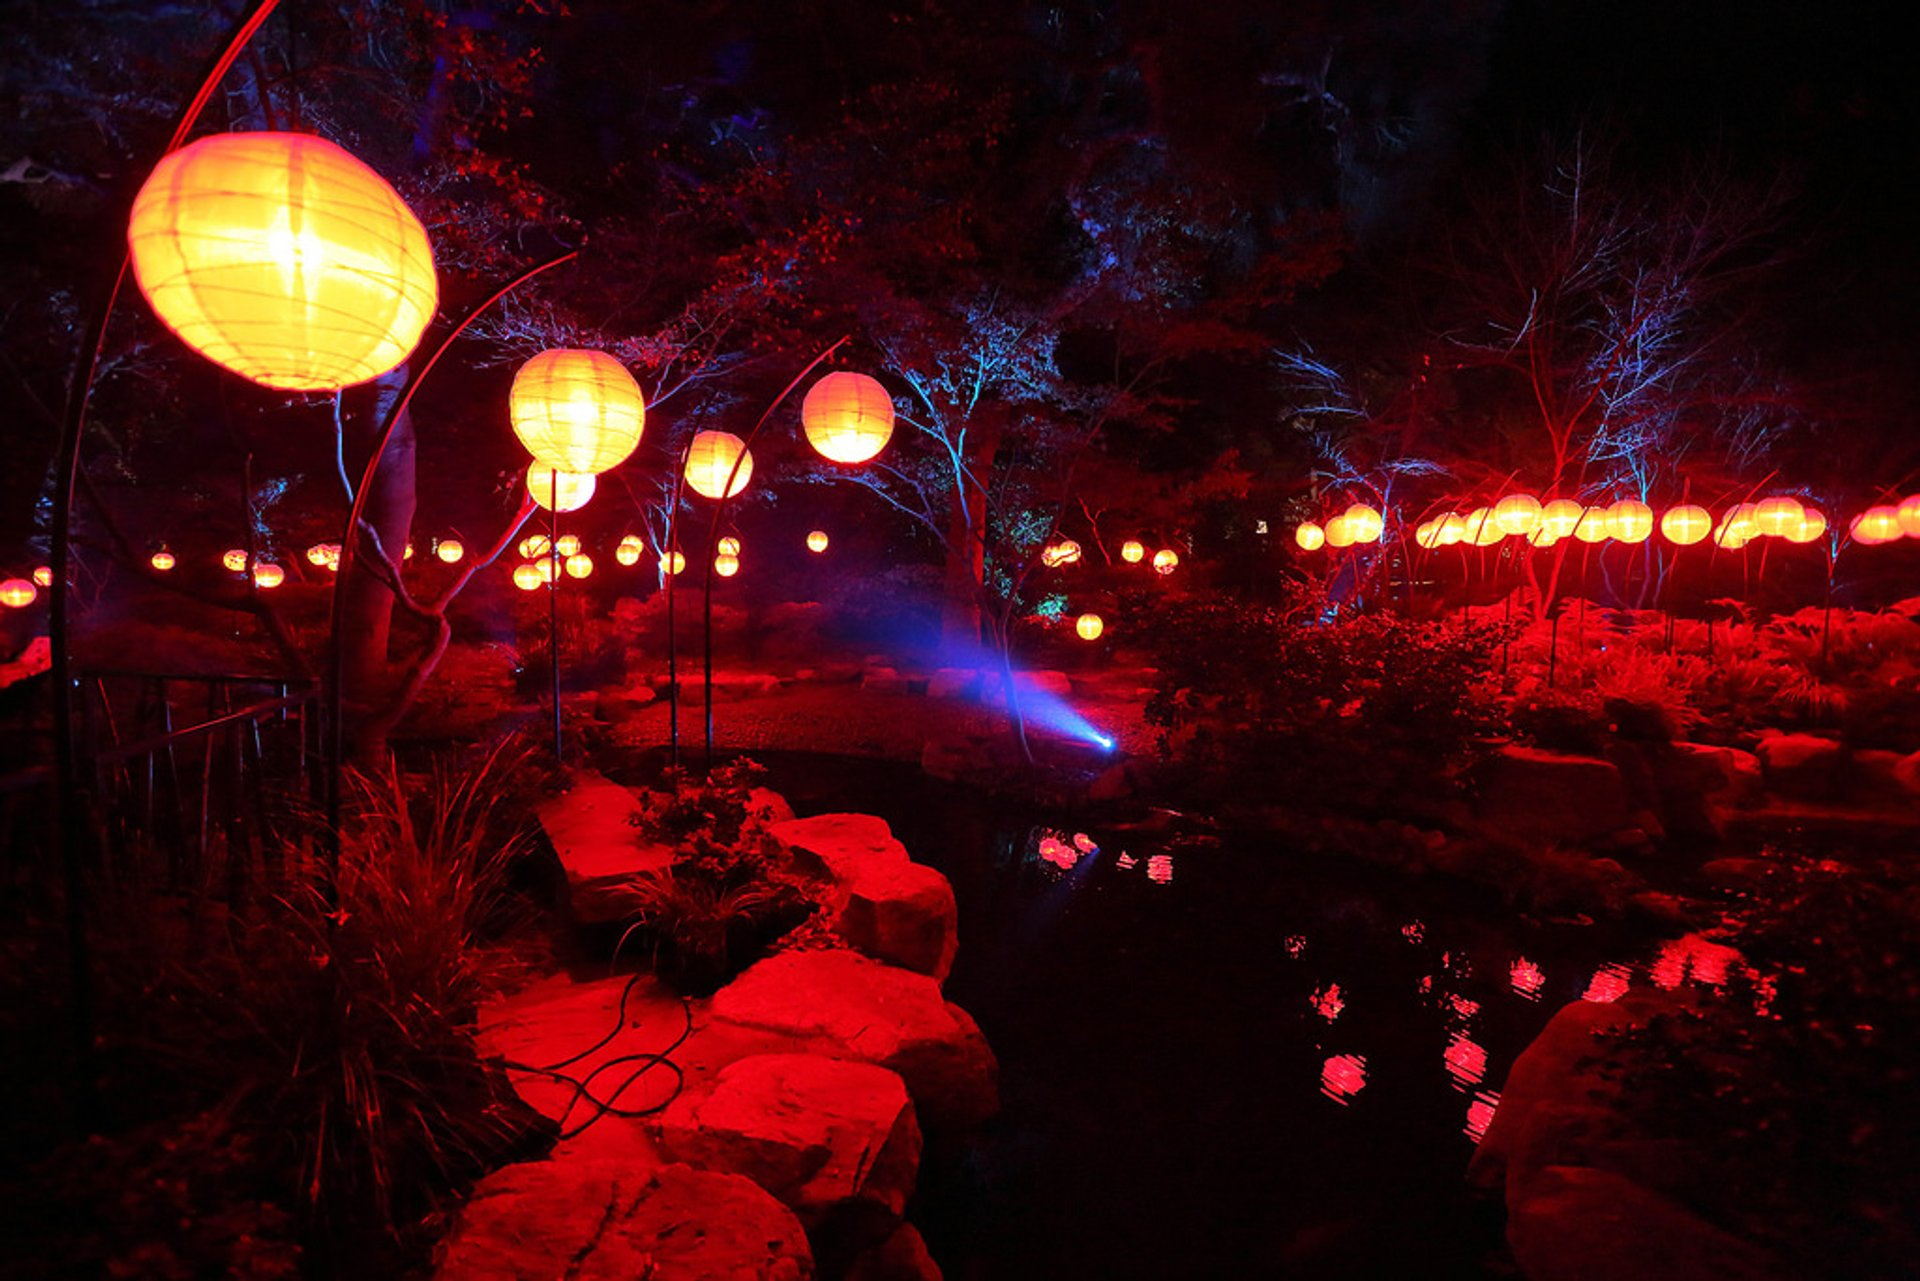 Enchanted: Forest of Light in California - Best Season